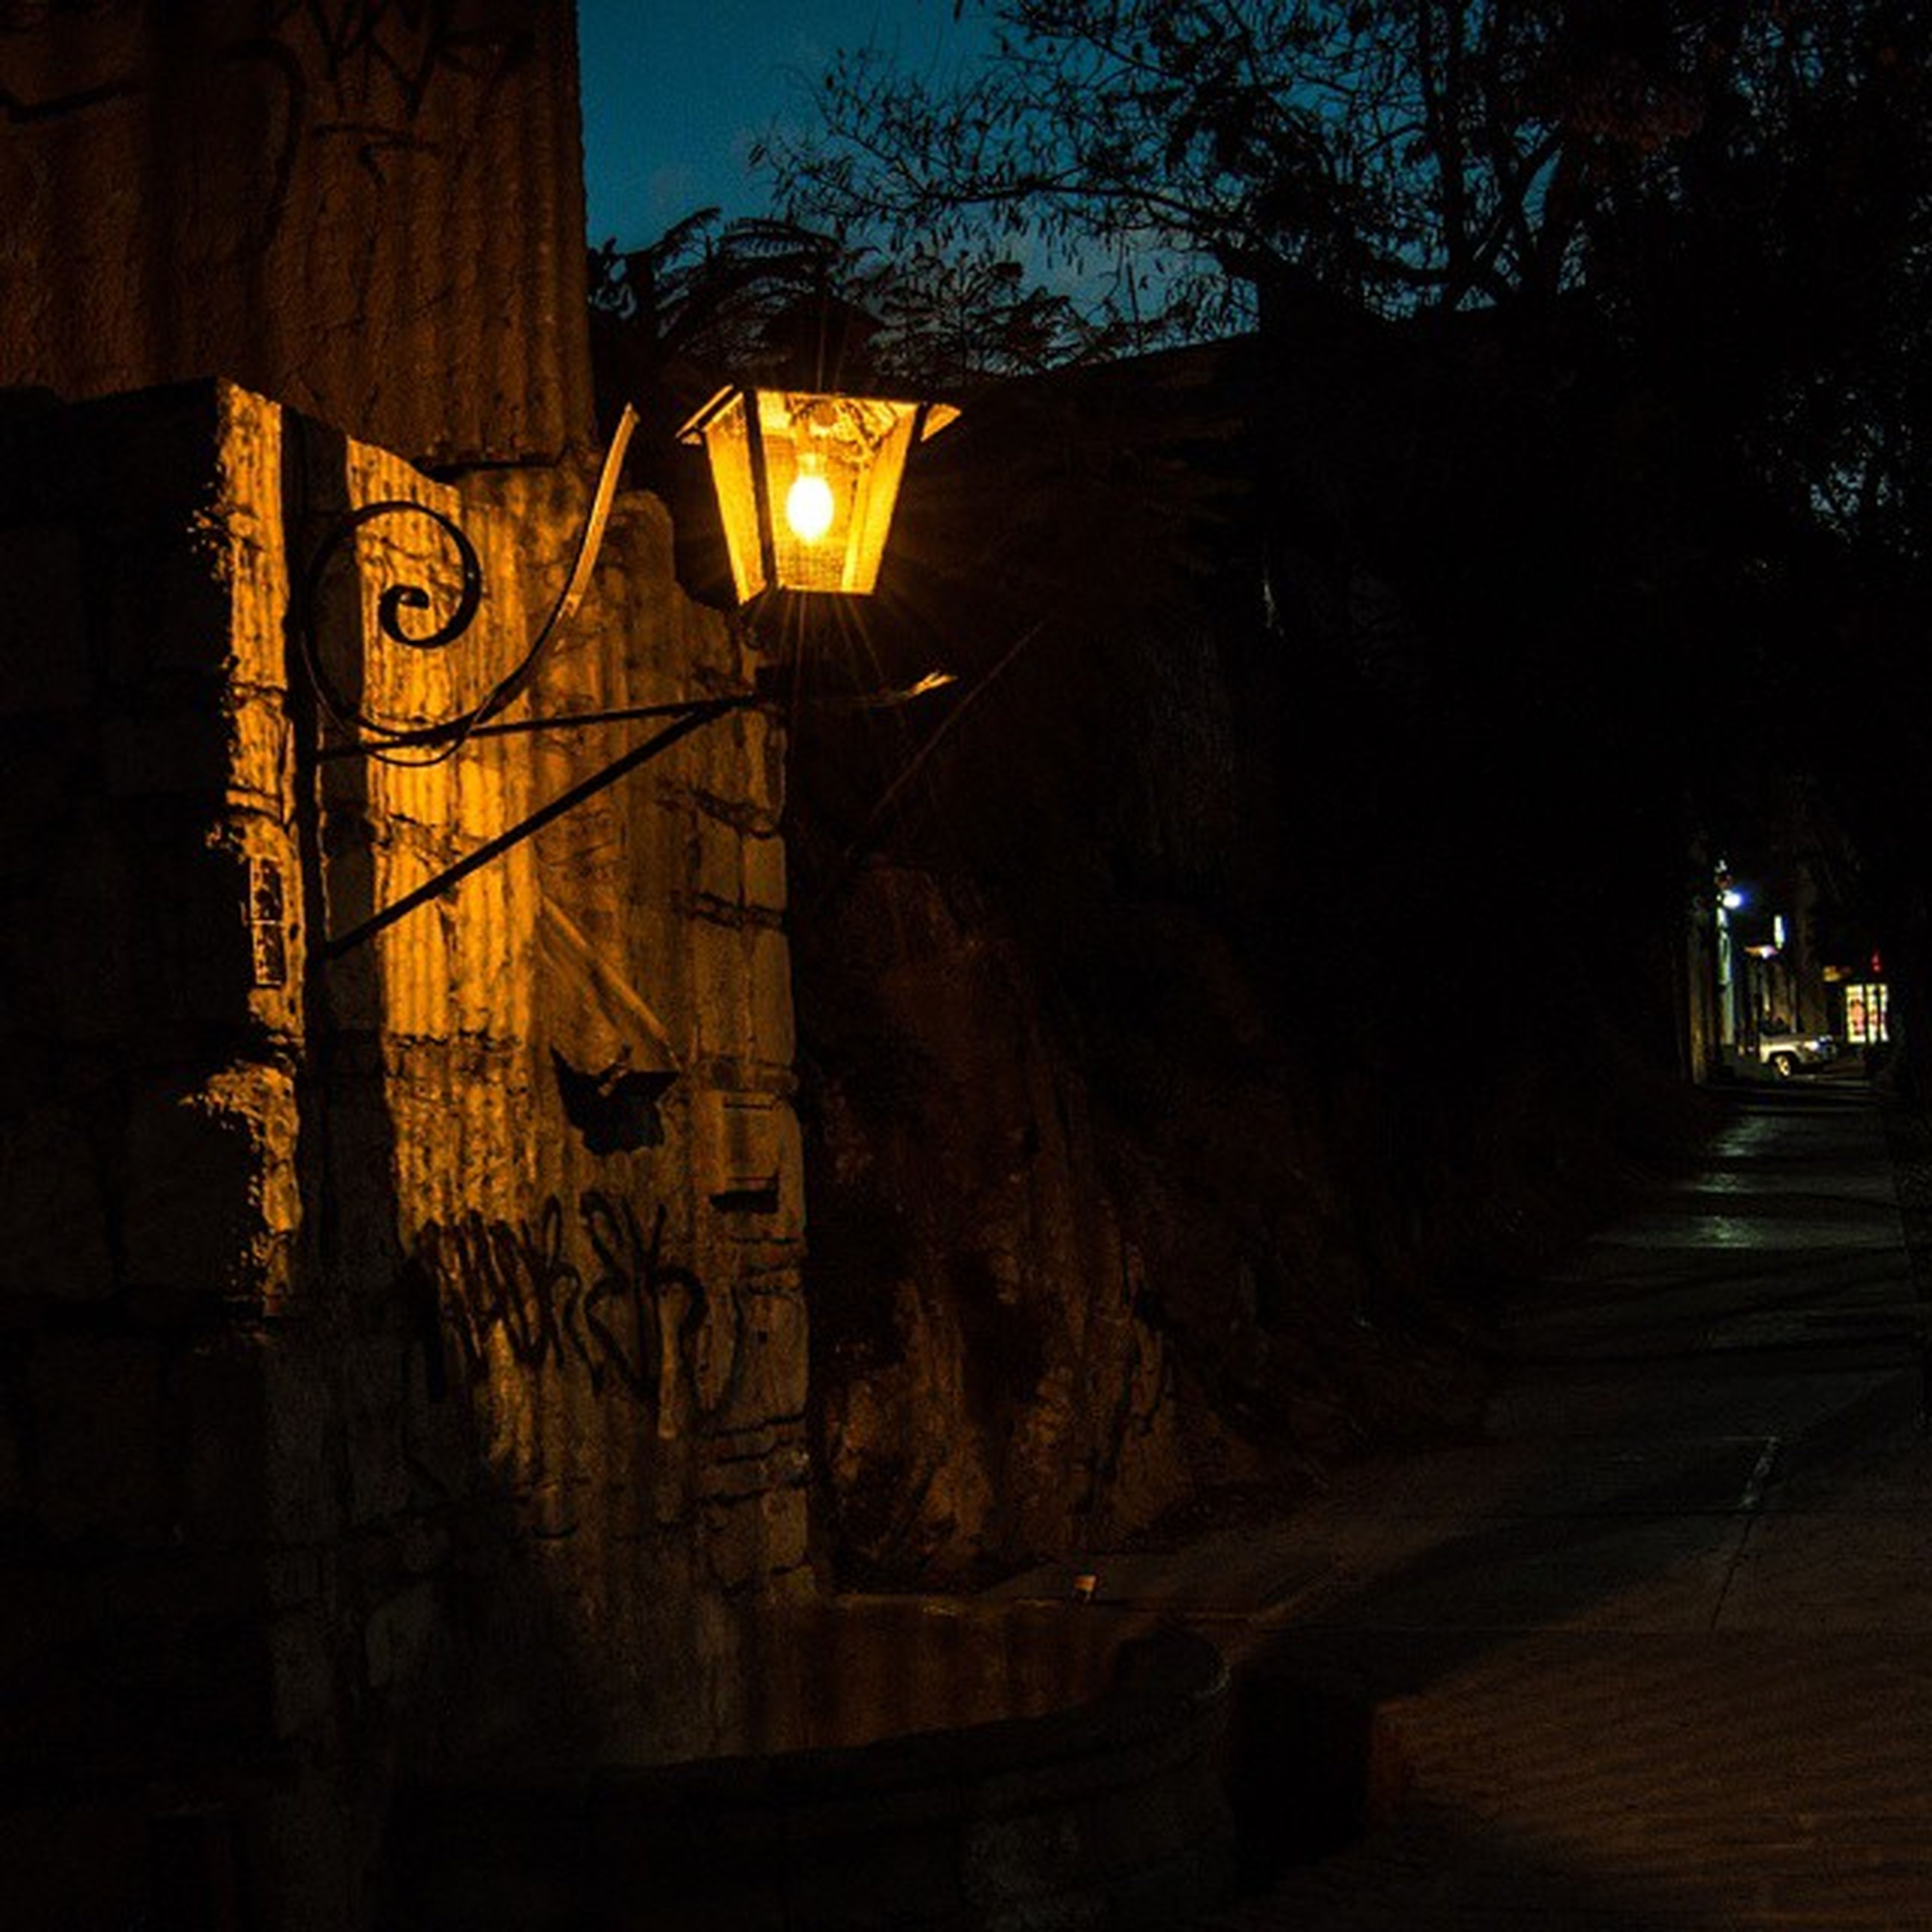 illuminated, night, lighting equipment, tree, street light, built structure, architecture, low angle view, light - natural phenomenon, no people, electric light, dusk, dark, the way forward, shadow, outdoors, wall - building feature, yellow, electricity, building exterior